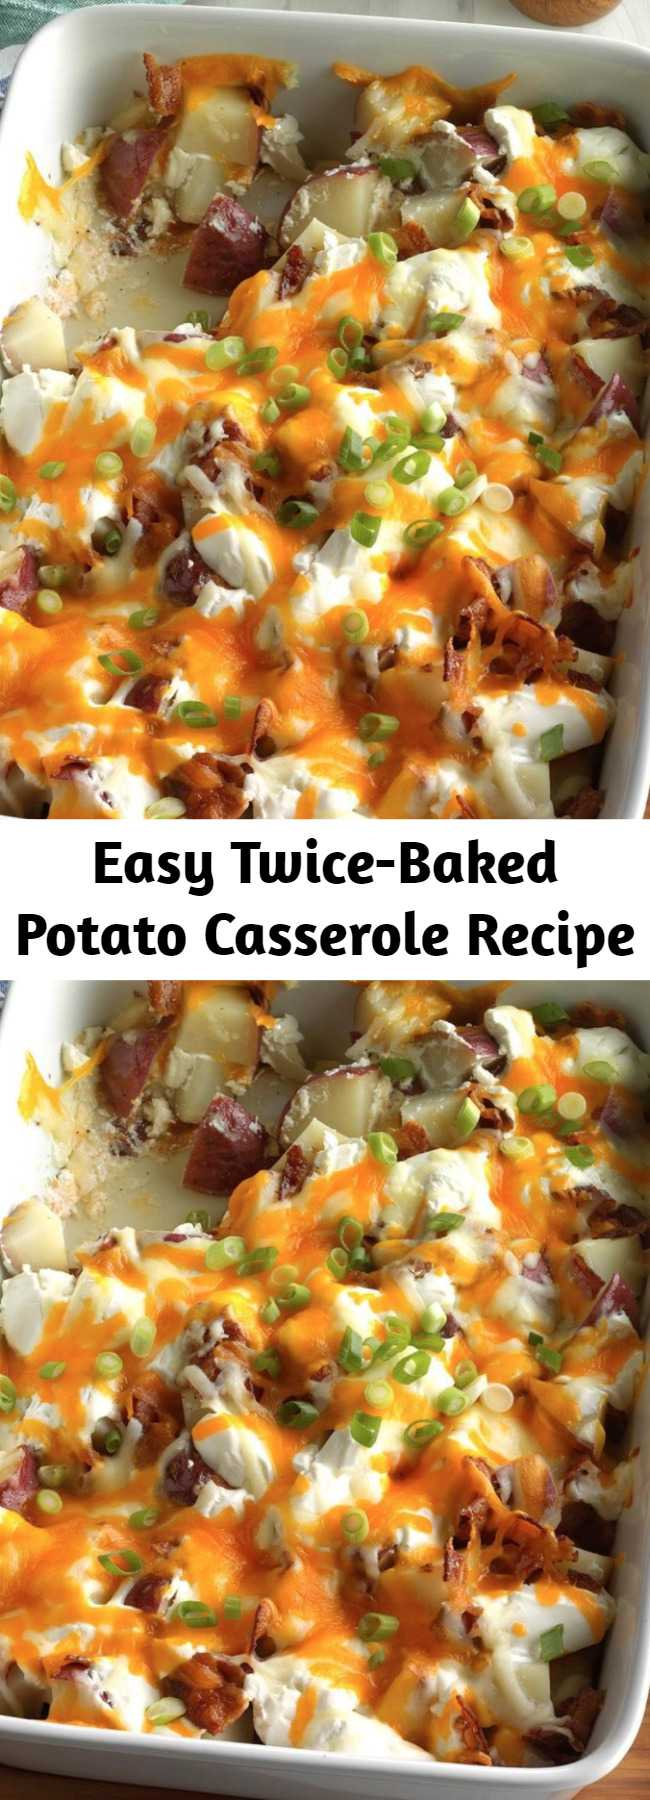 Easy Twice-Baked Potato Casserole Recipe - My daughter gave me this twice-baked potatoes recipe because she knows I love potatoes. The hearty casserole is loaded with a palate-pleasing combination of bacon, cheeses, green onions and sour cream.